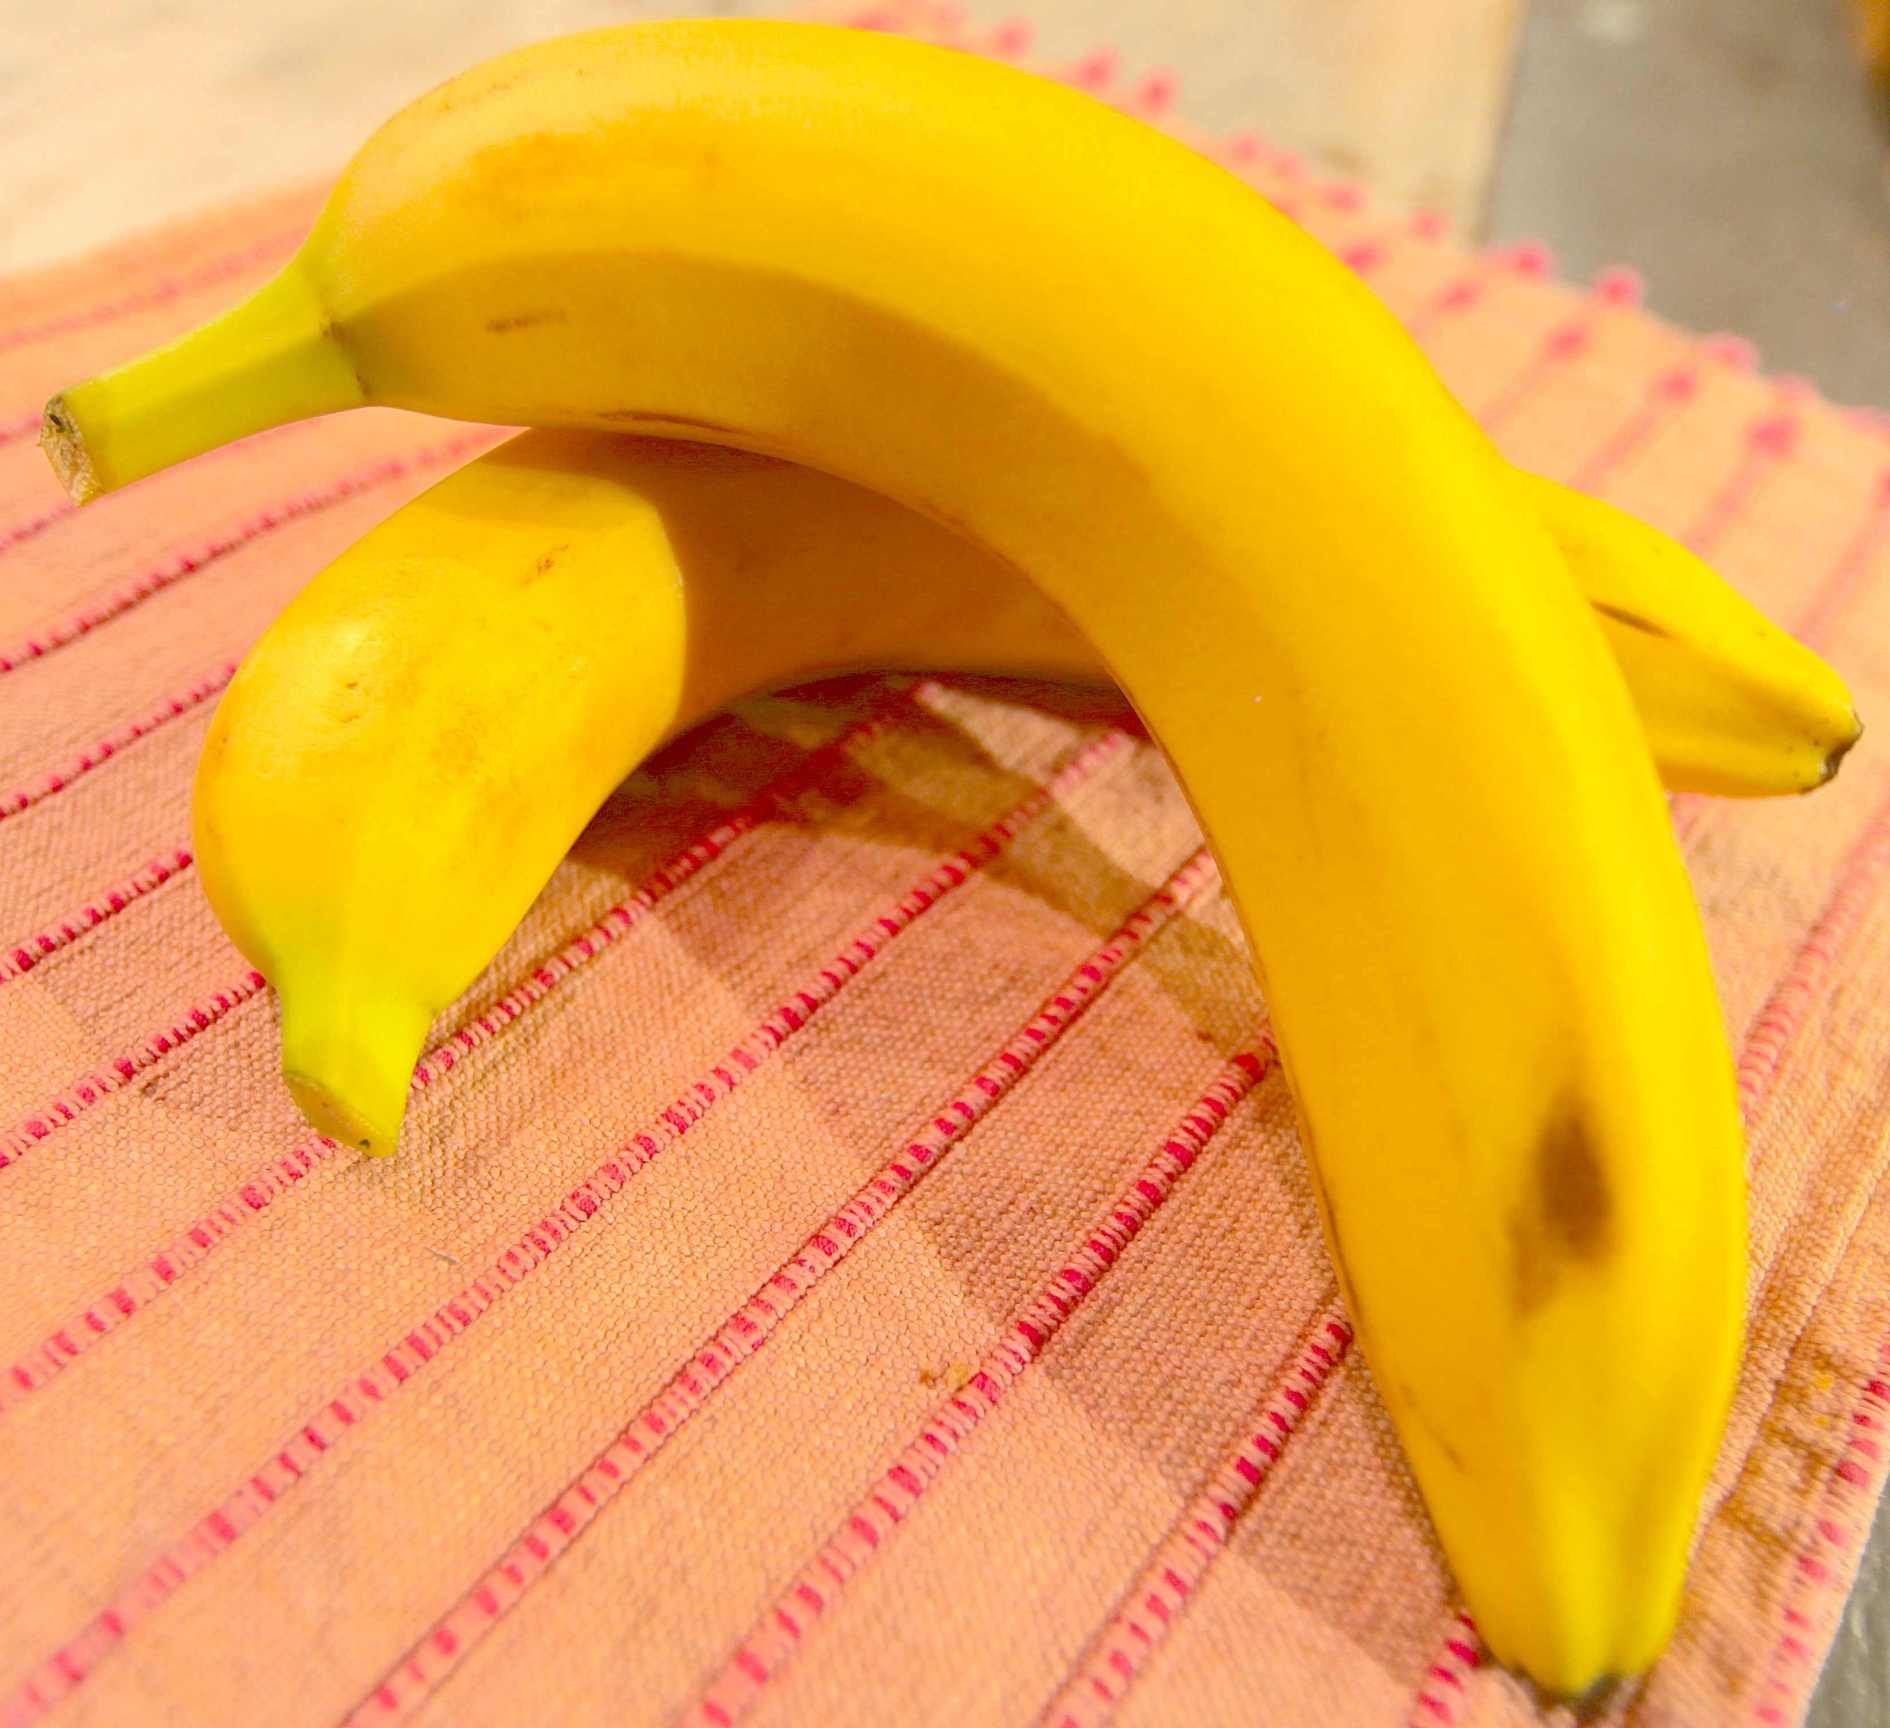 The Miraculous Banana and Its Peel. Photo © Liesl Clark